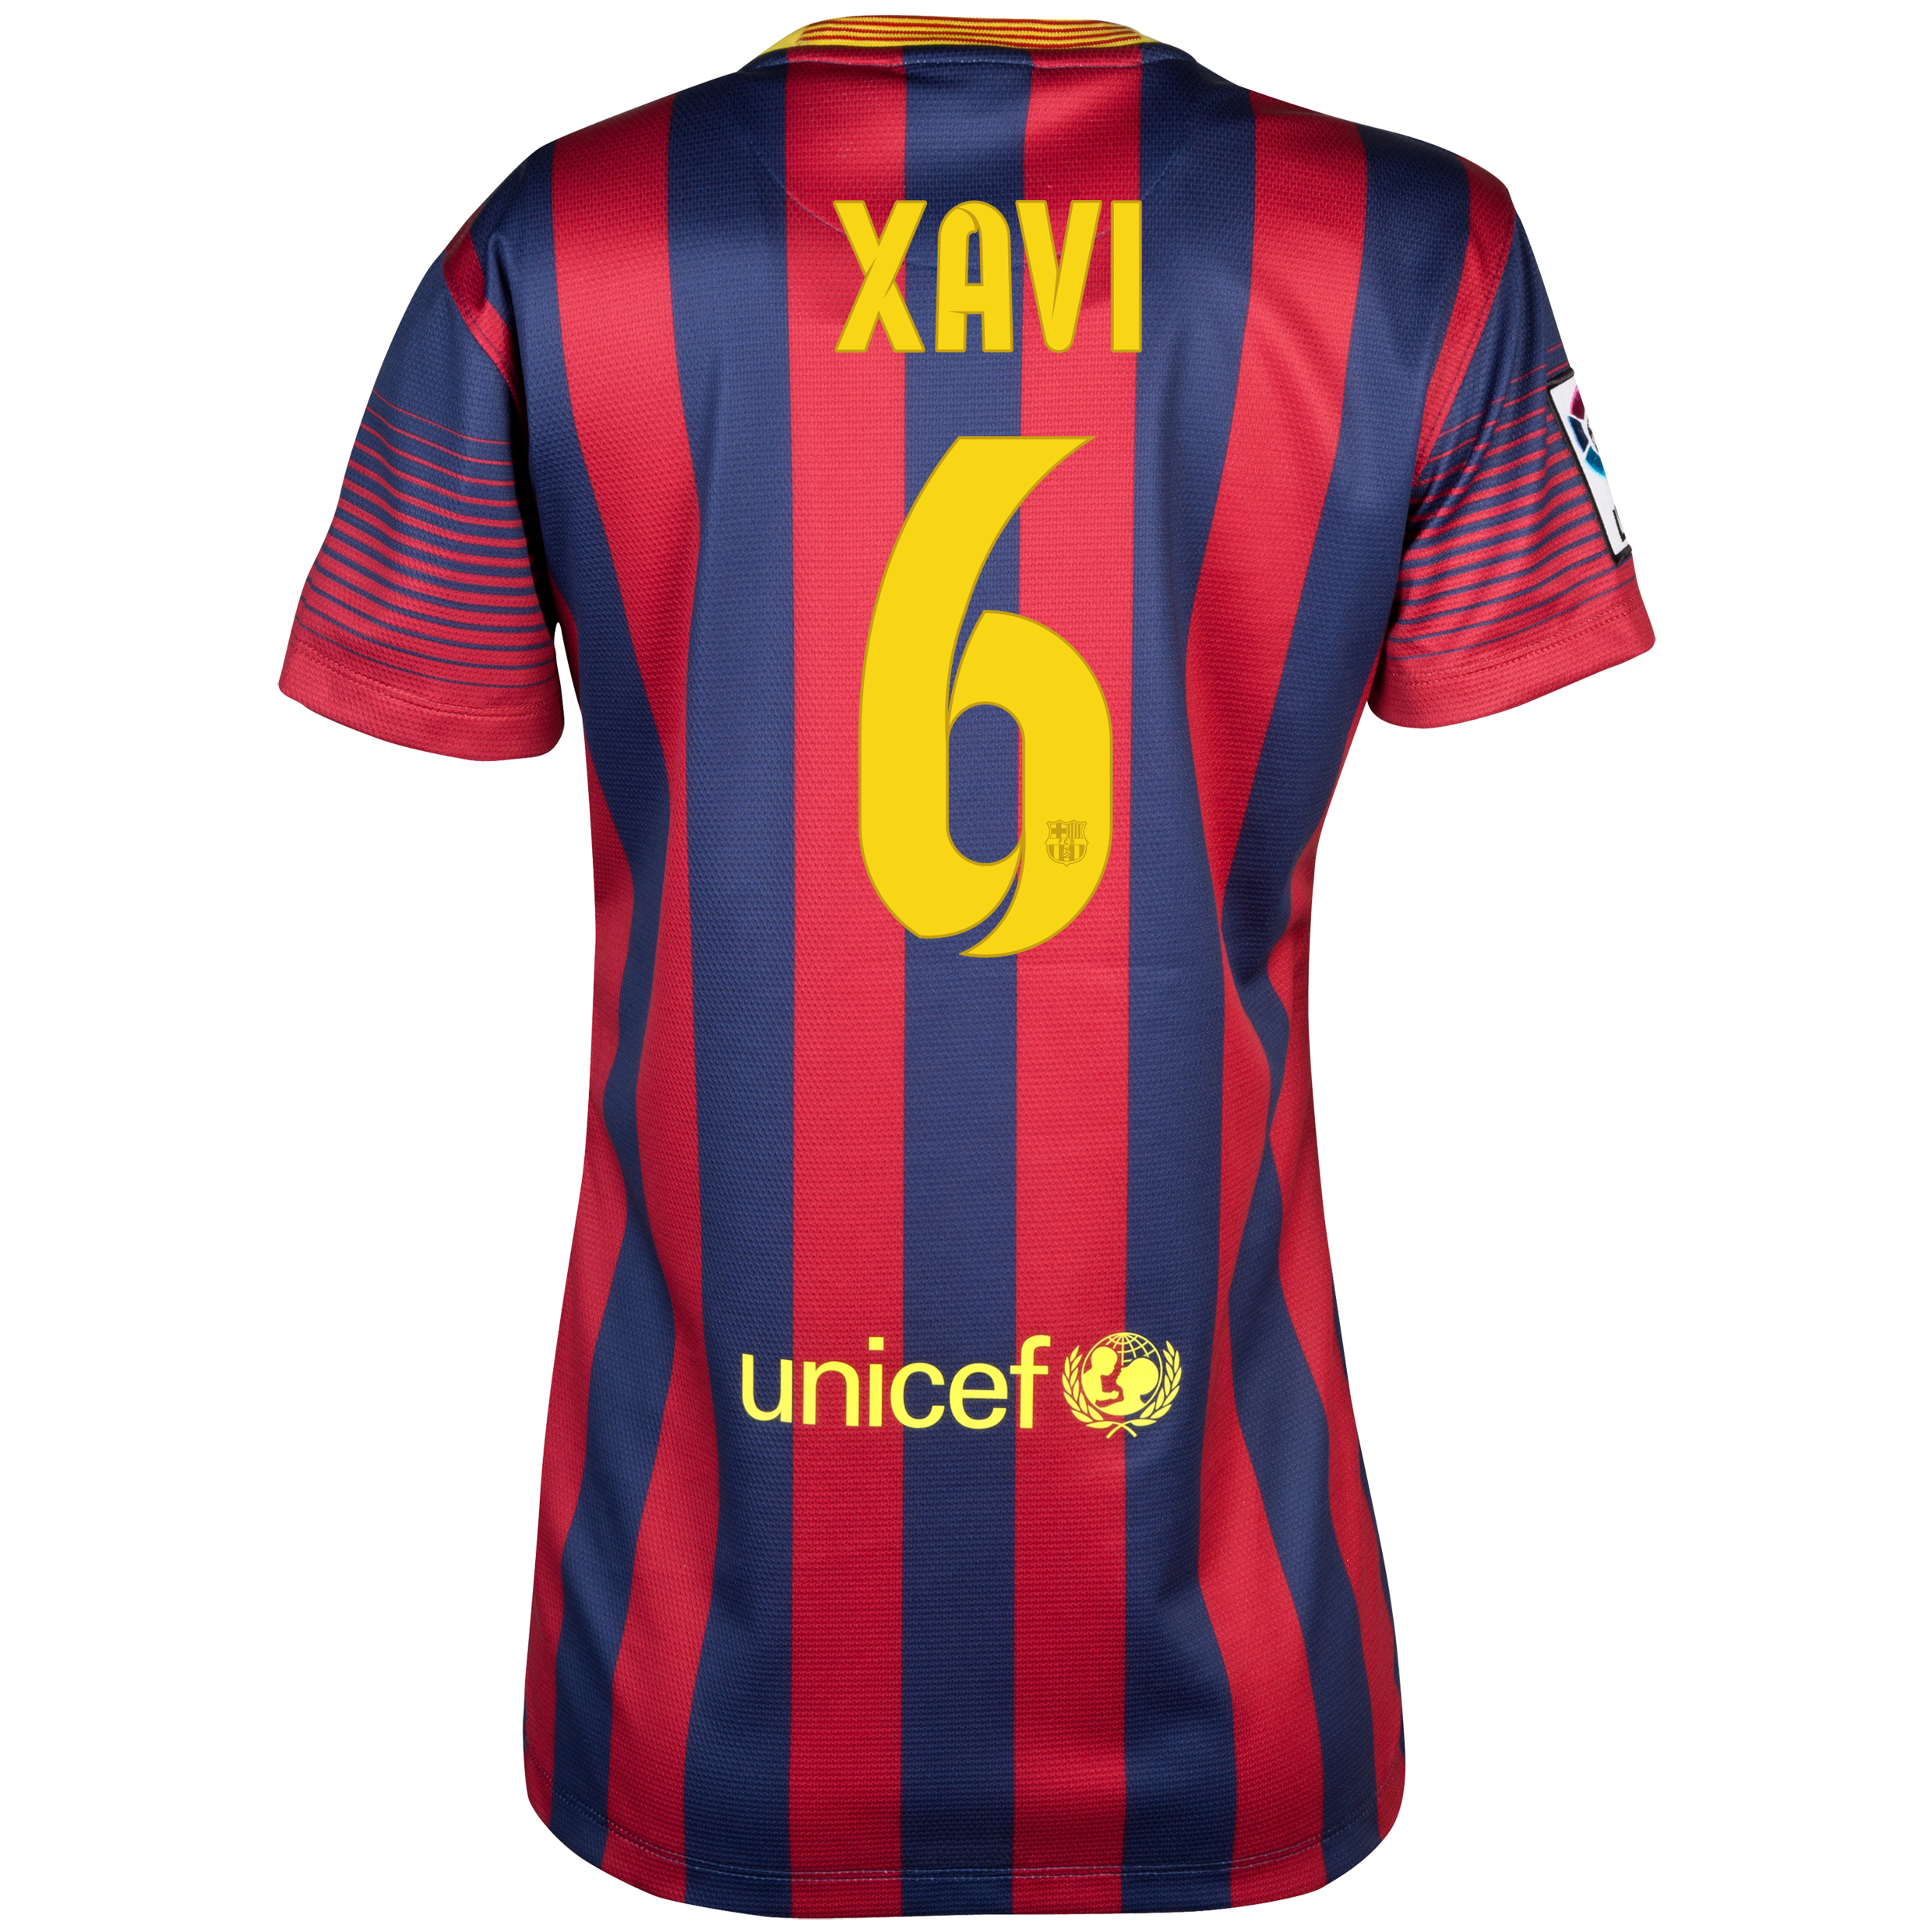 Barcelona Home Shirt 2013/14 - Womens with Xavi 6 printing